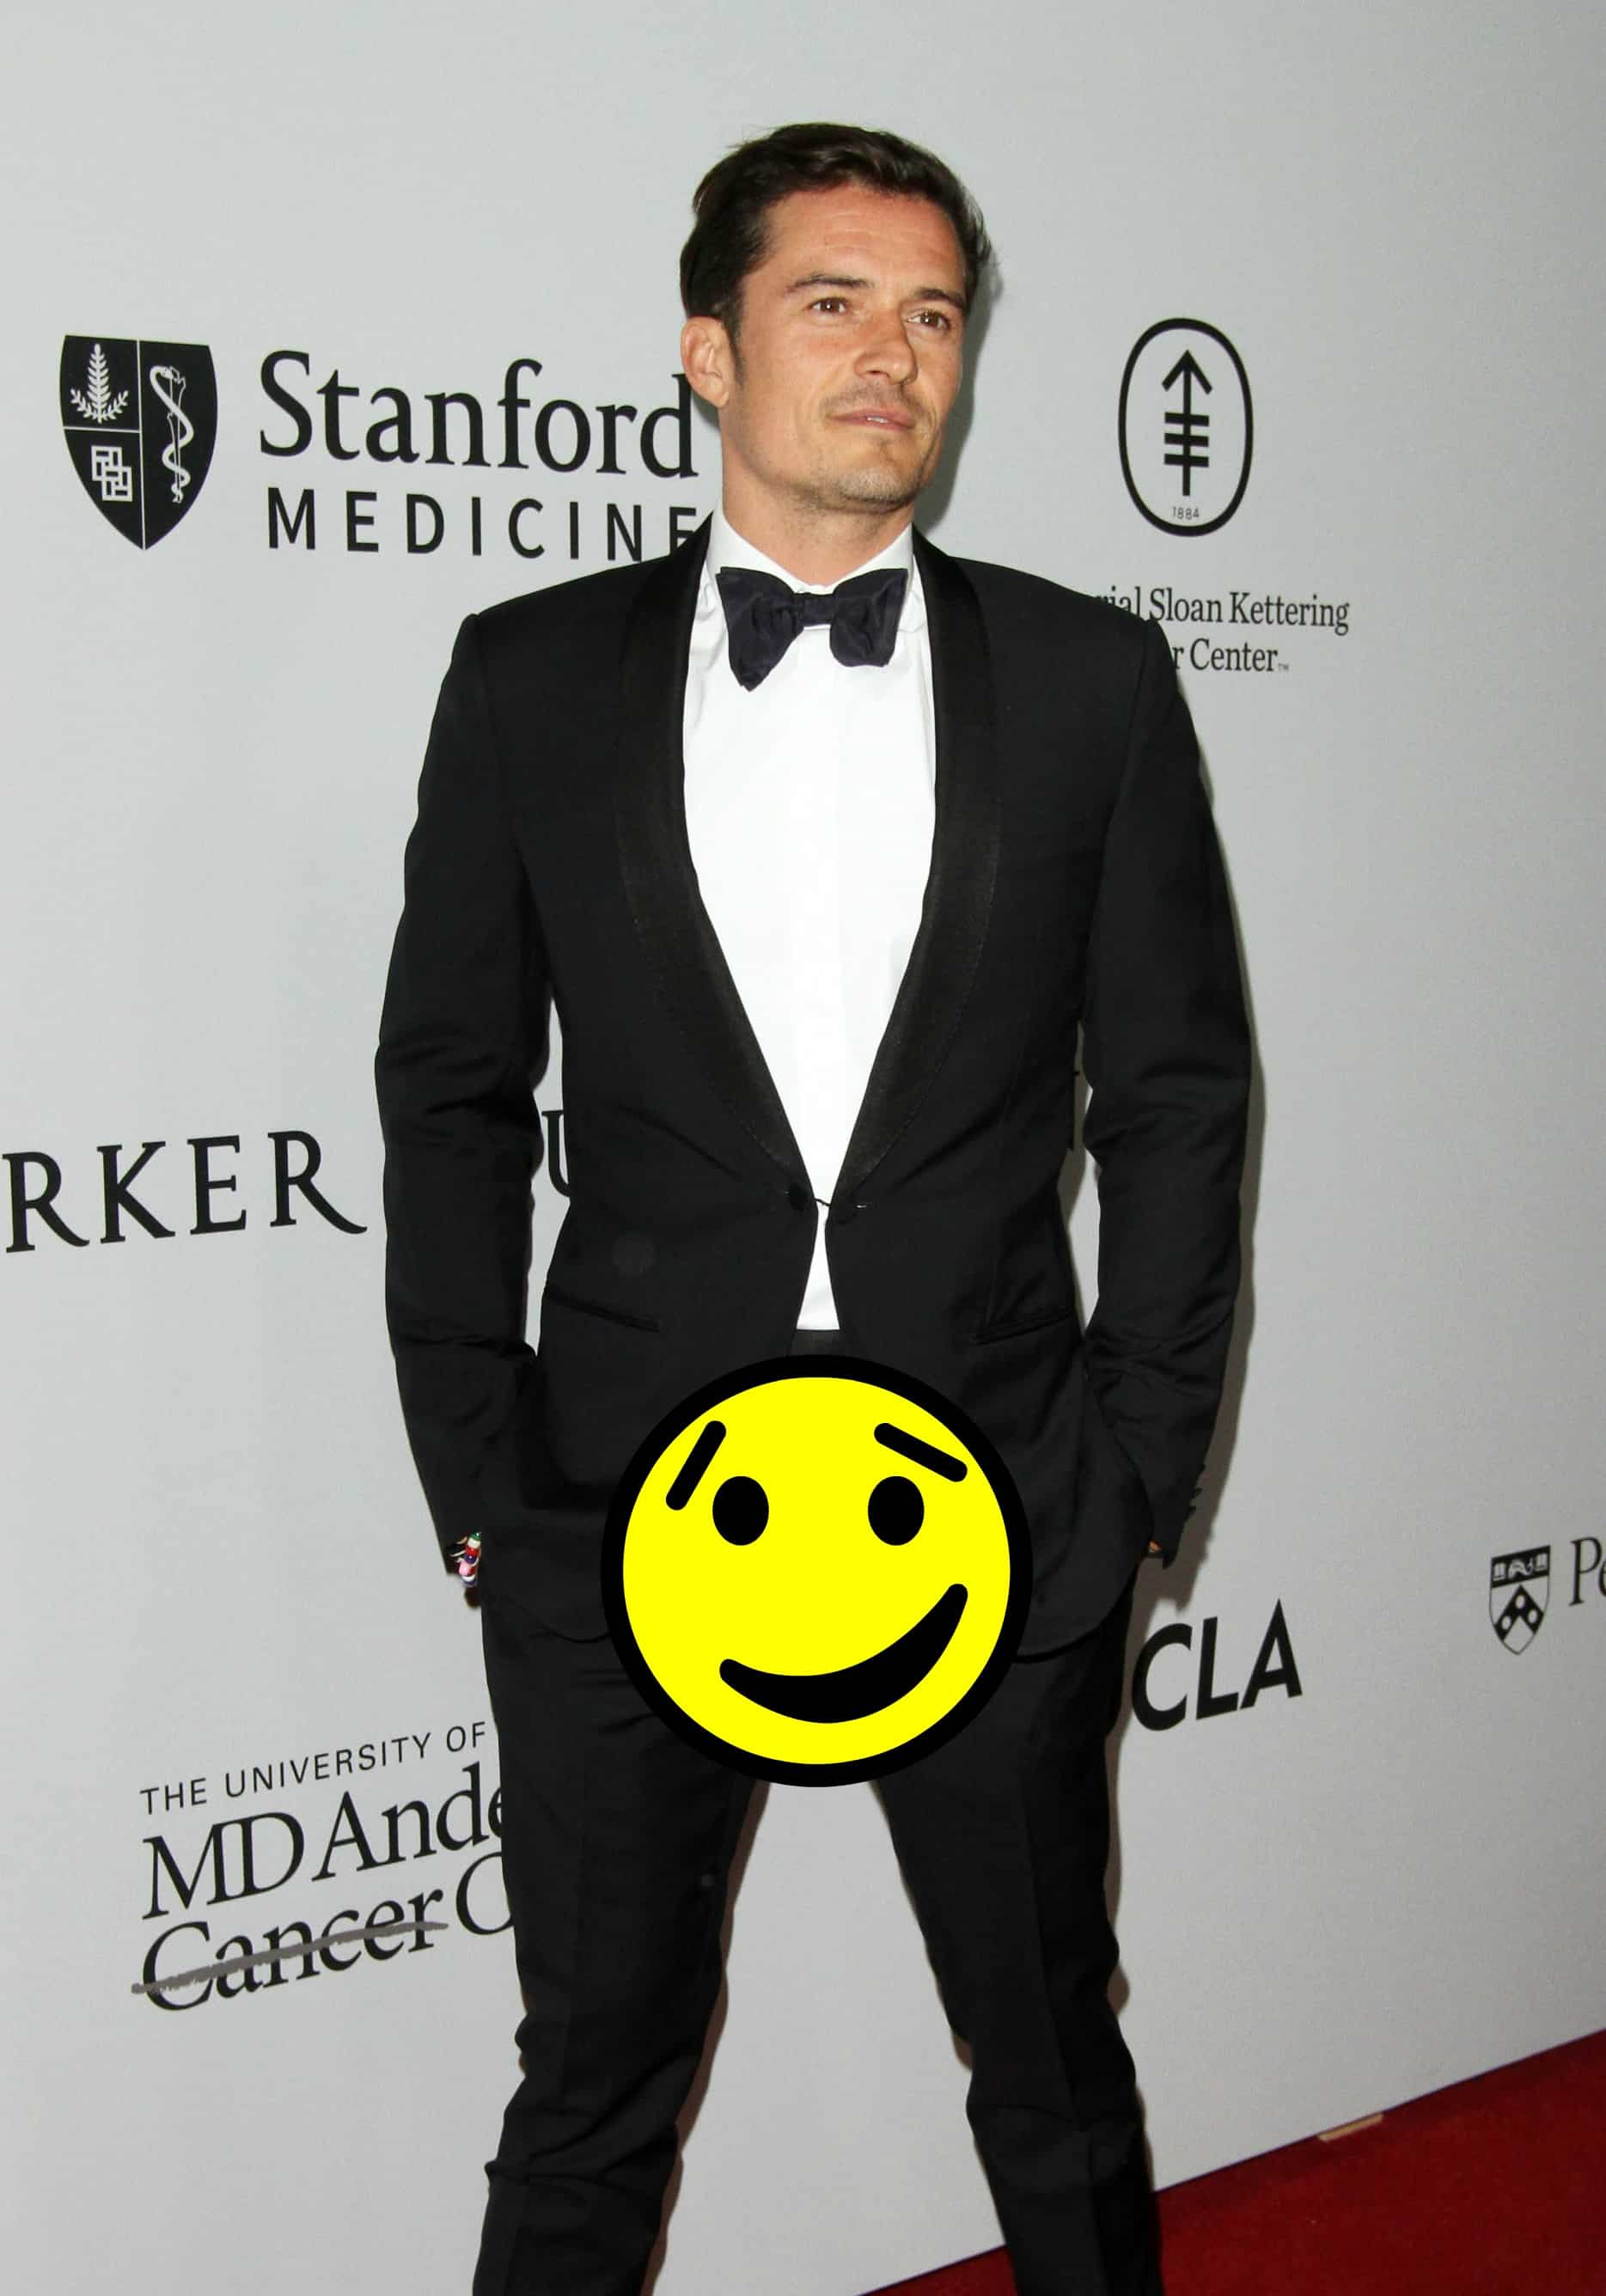 Orlando Blooms Nude Paddleboarding & The Rise Of The Male